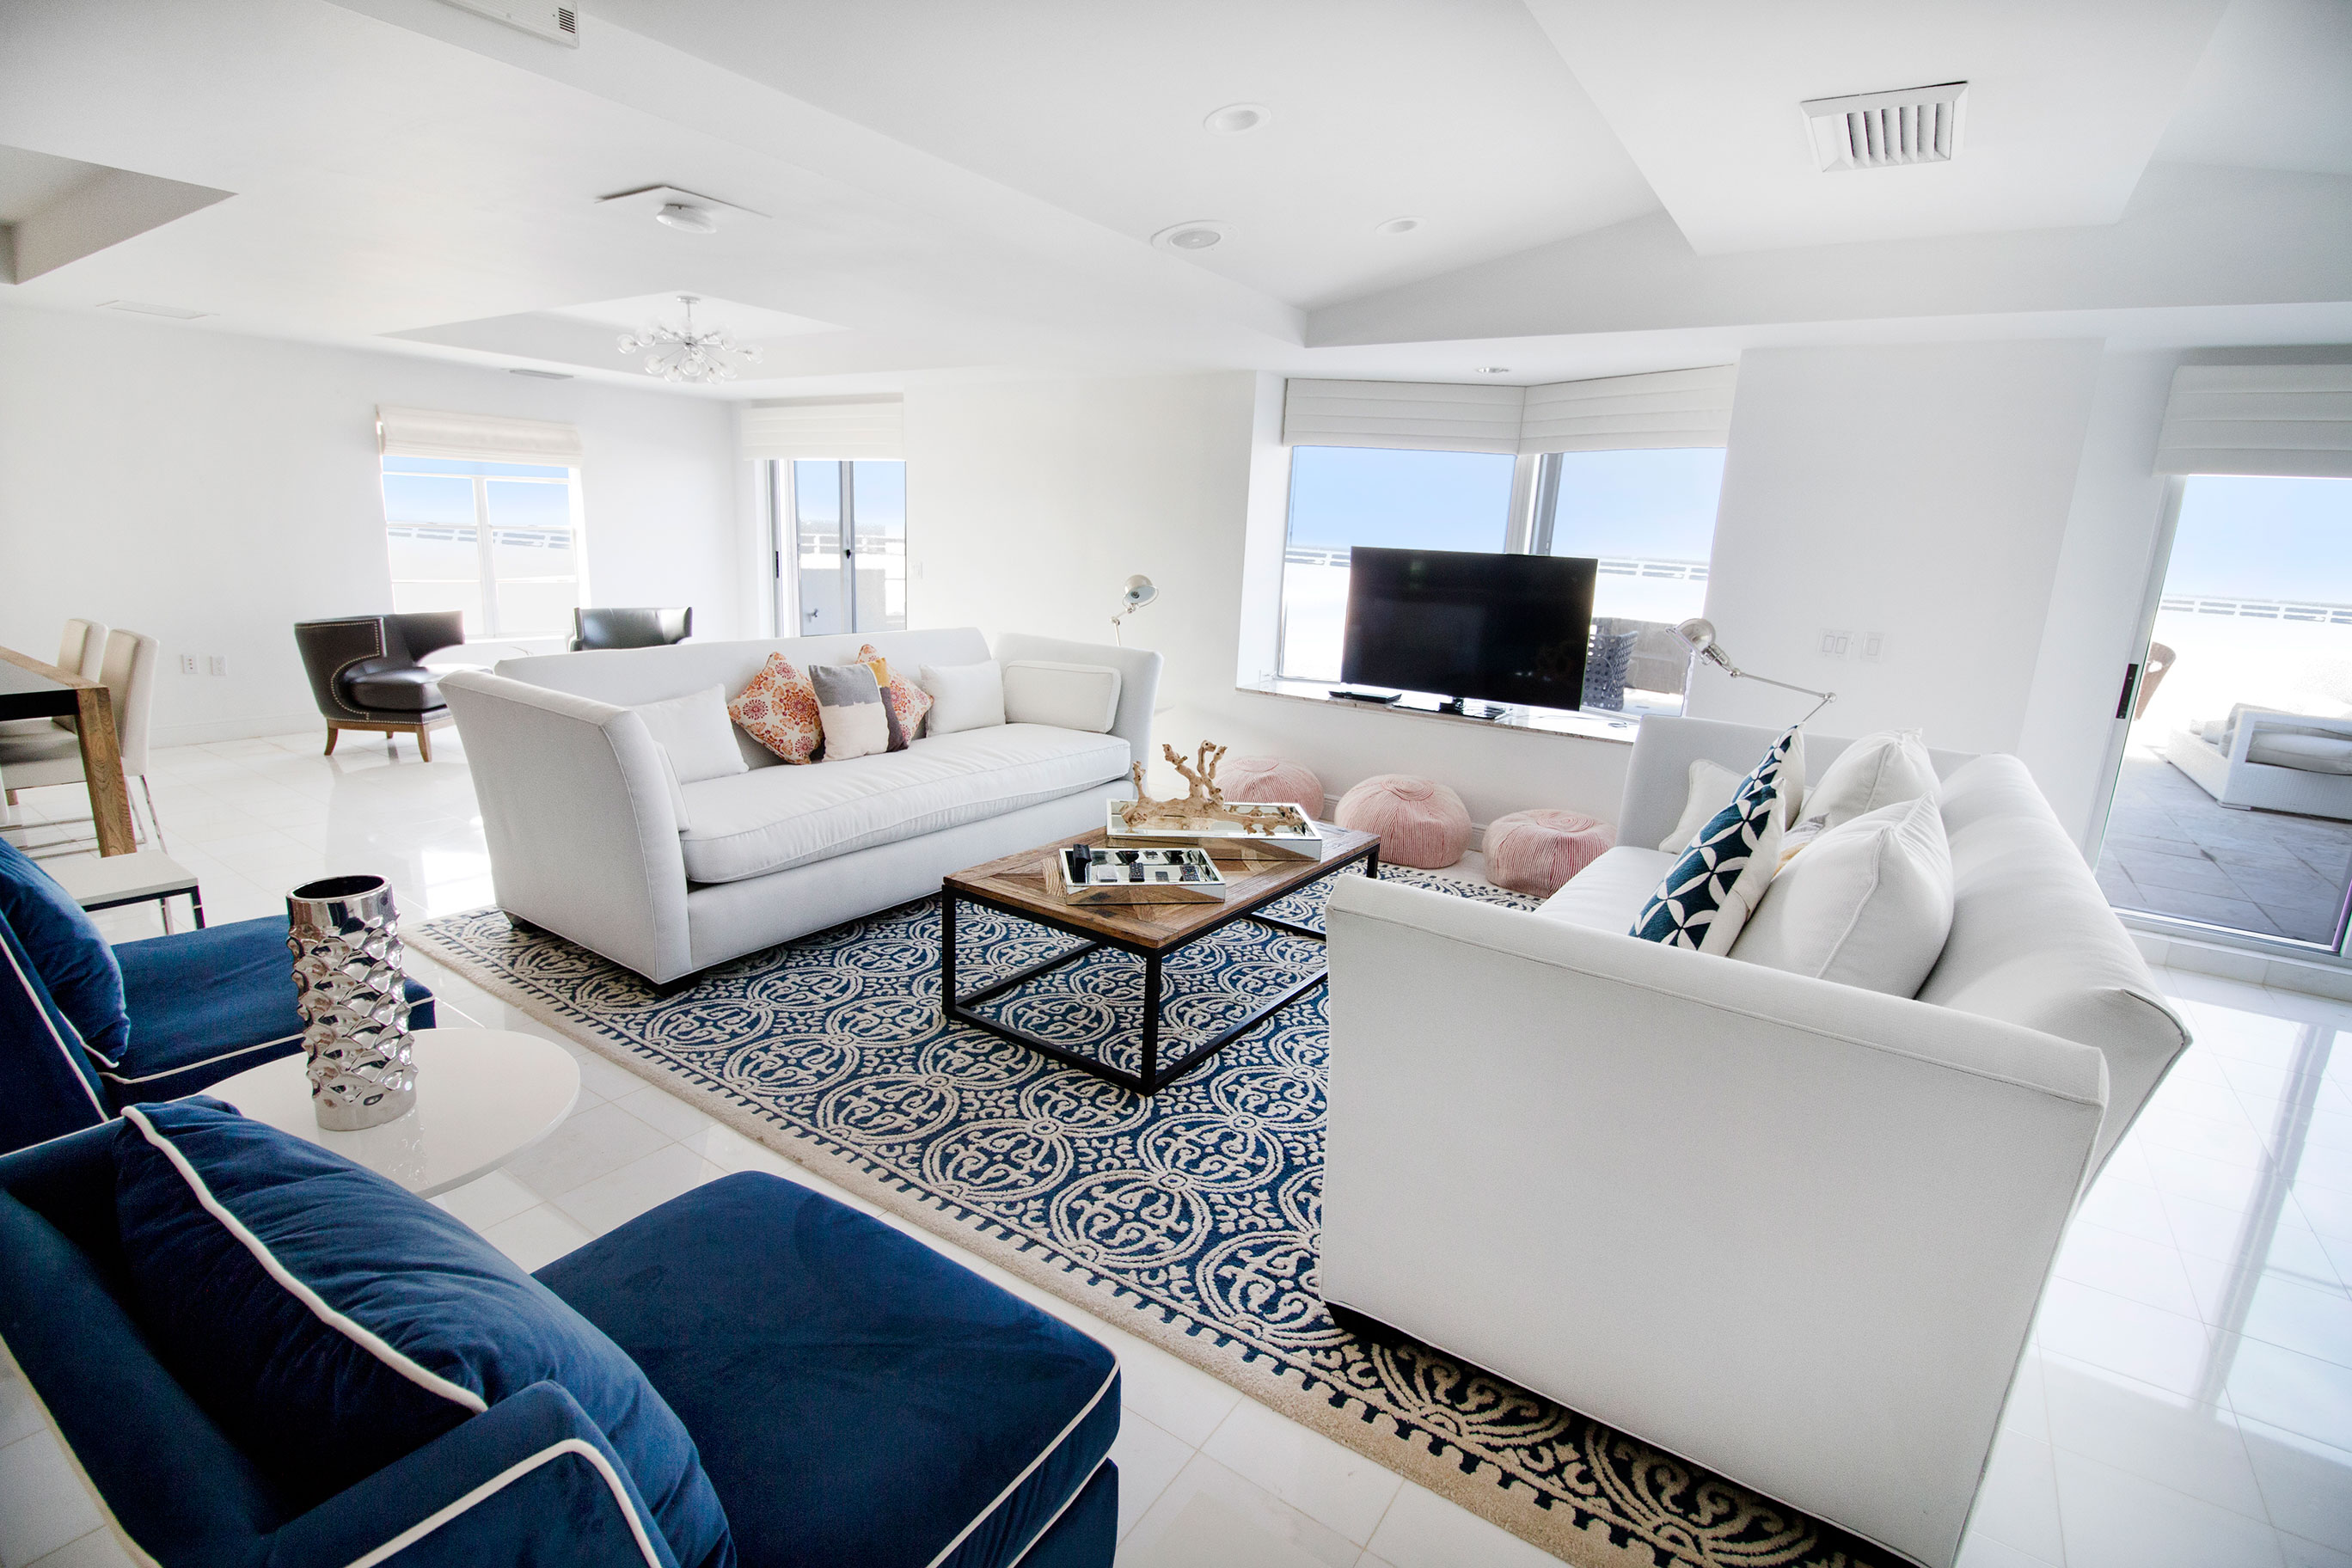 Living room of penthouse at seacoast suites